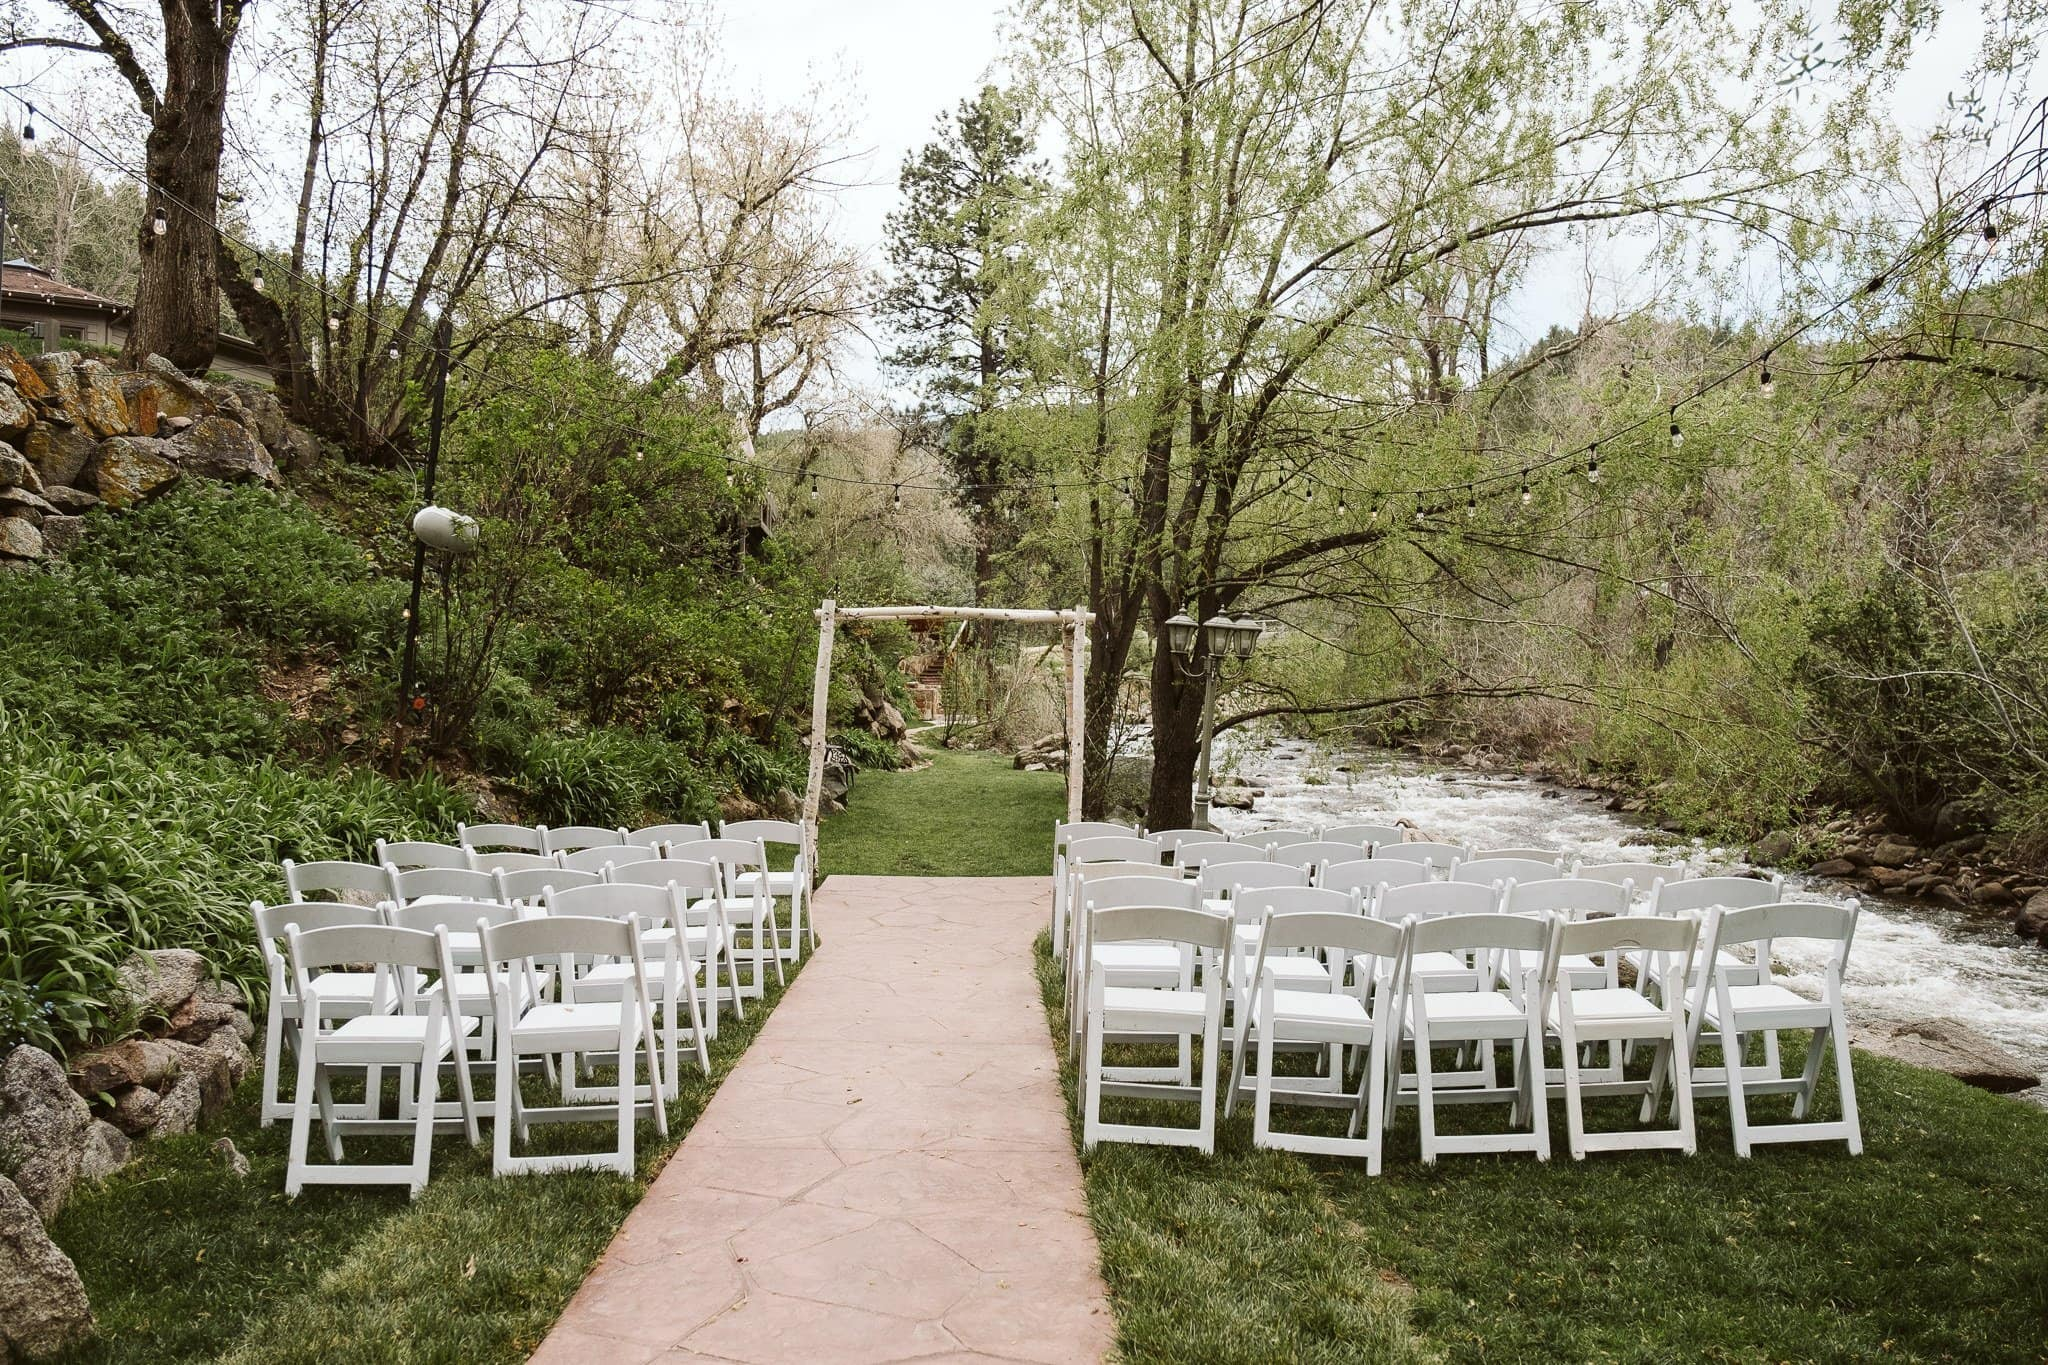 wedgewood-boulder-creek-wedding-venue-8